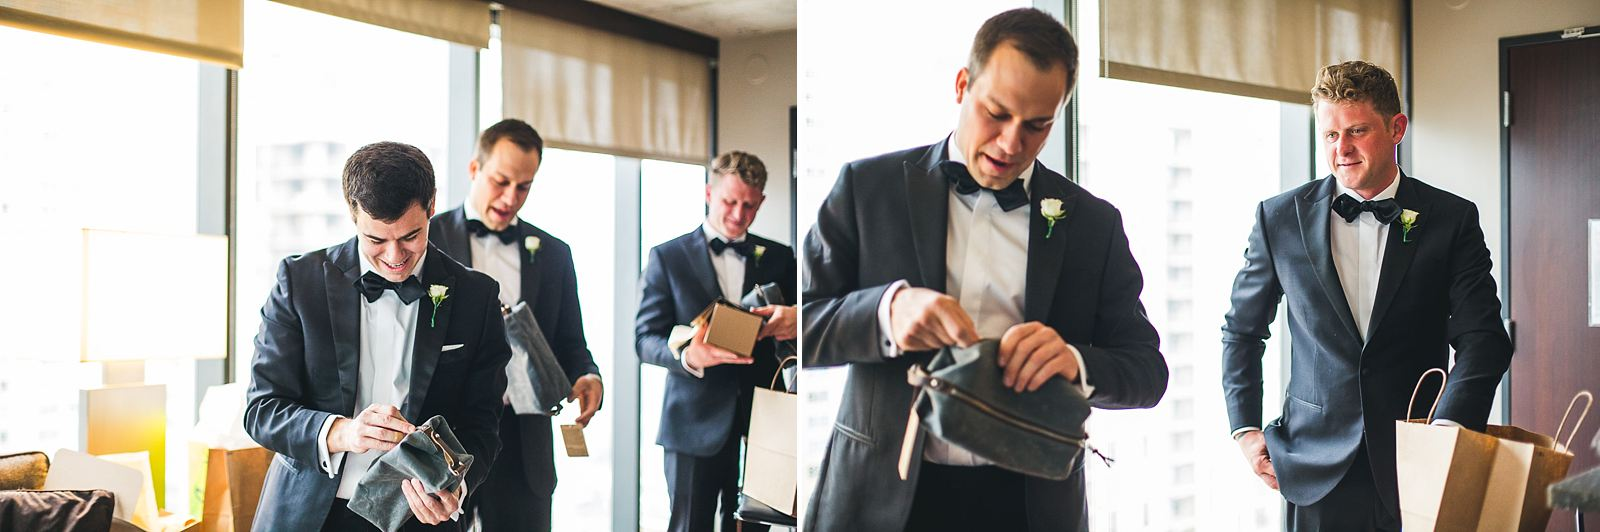 13 groomsmen - Ivy Room Wedding // Audrey + Tyler